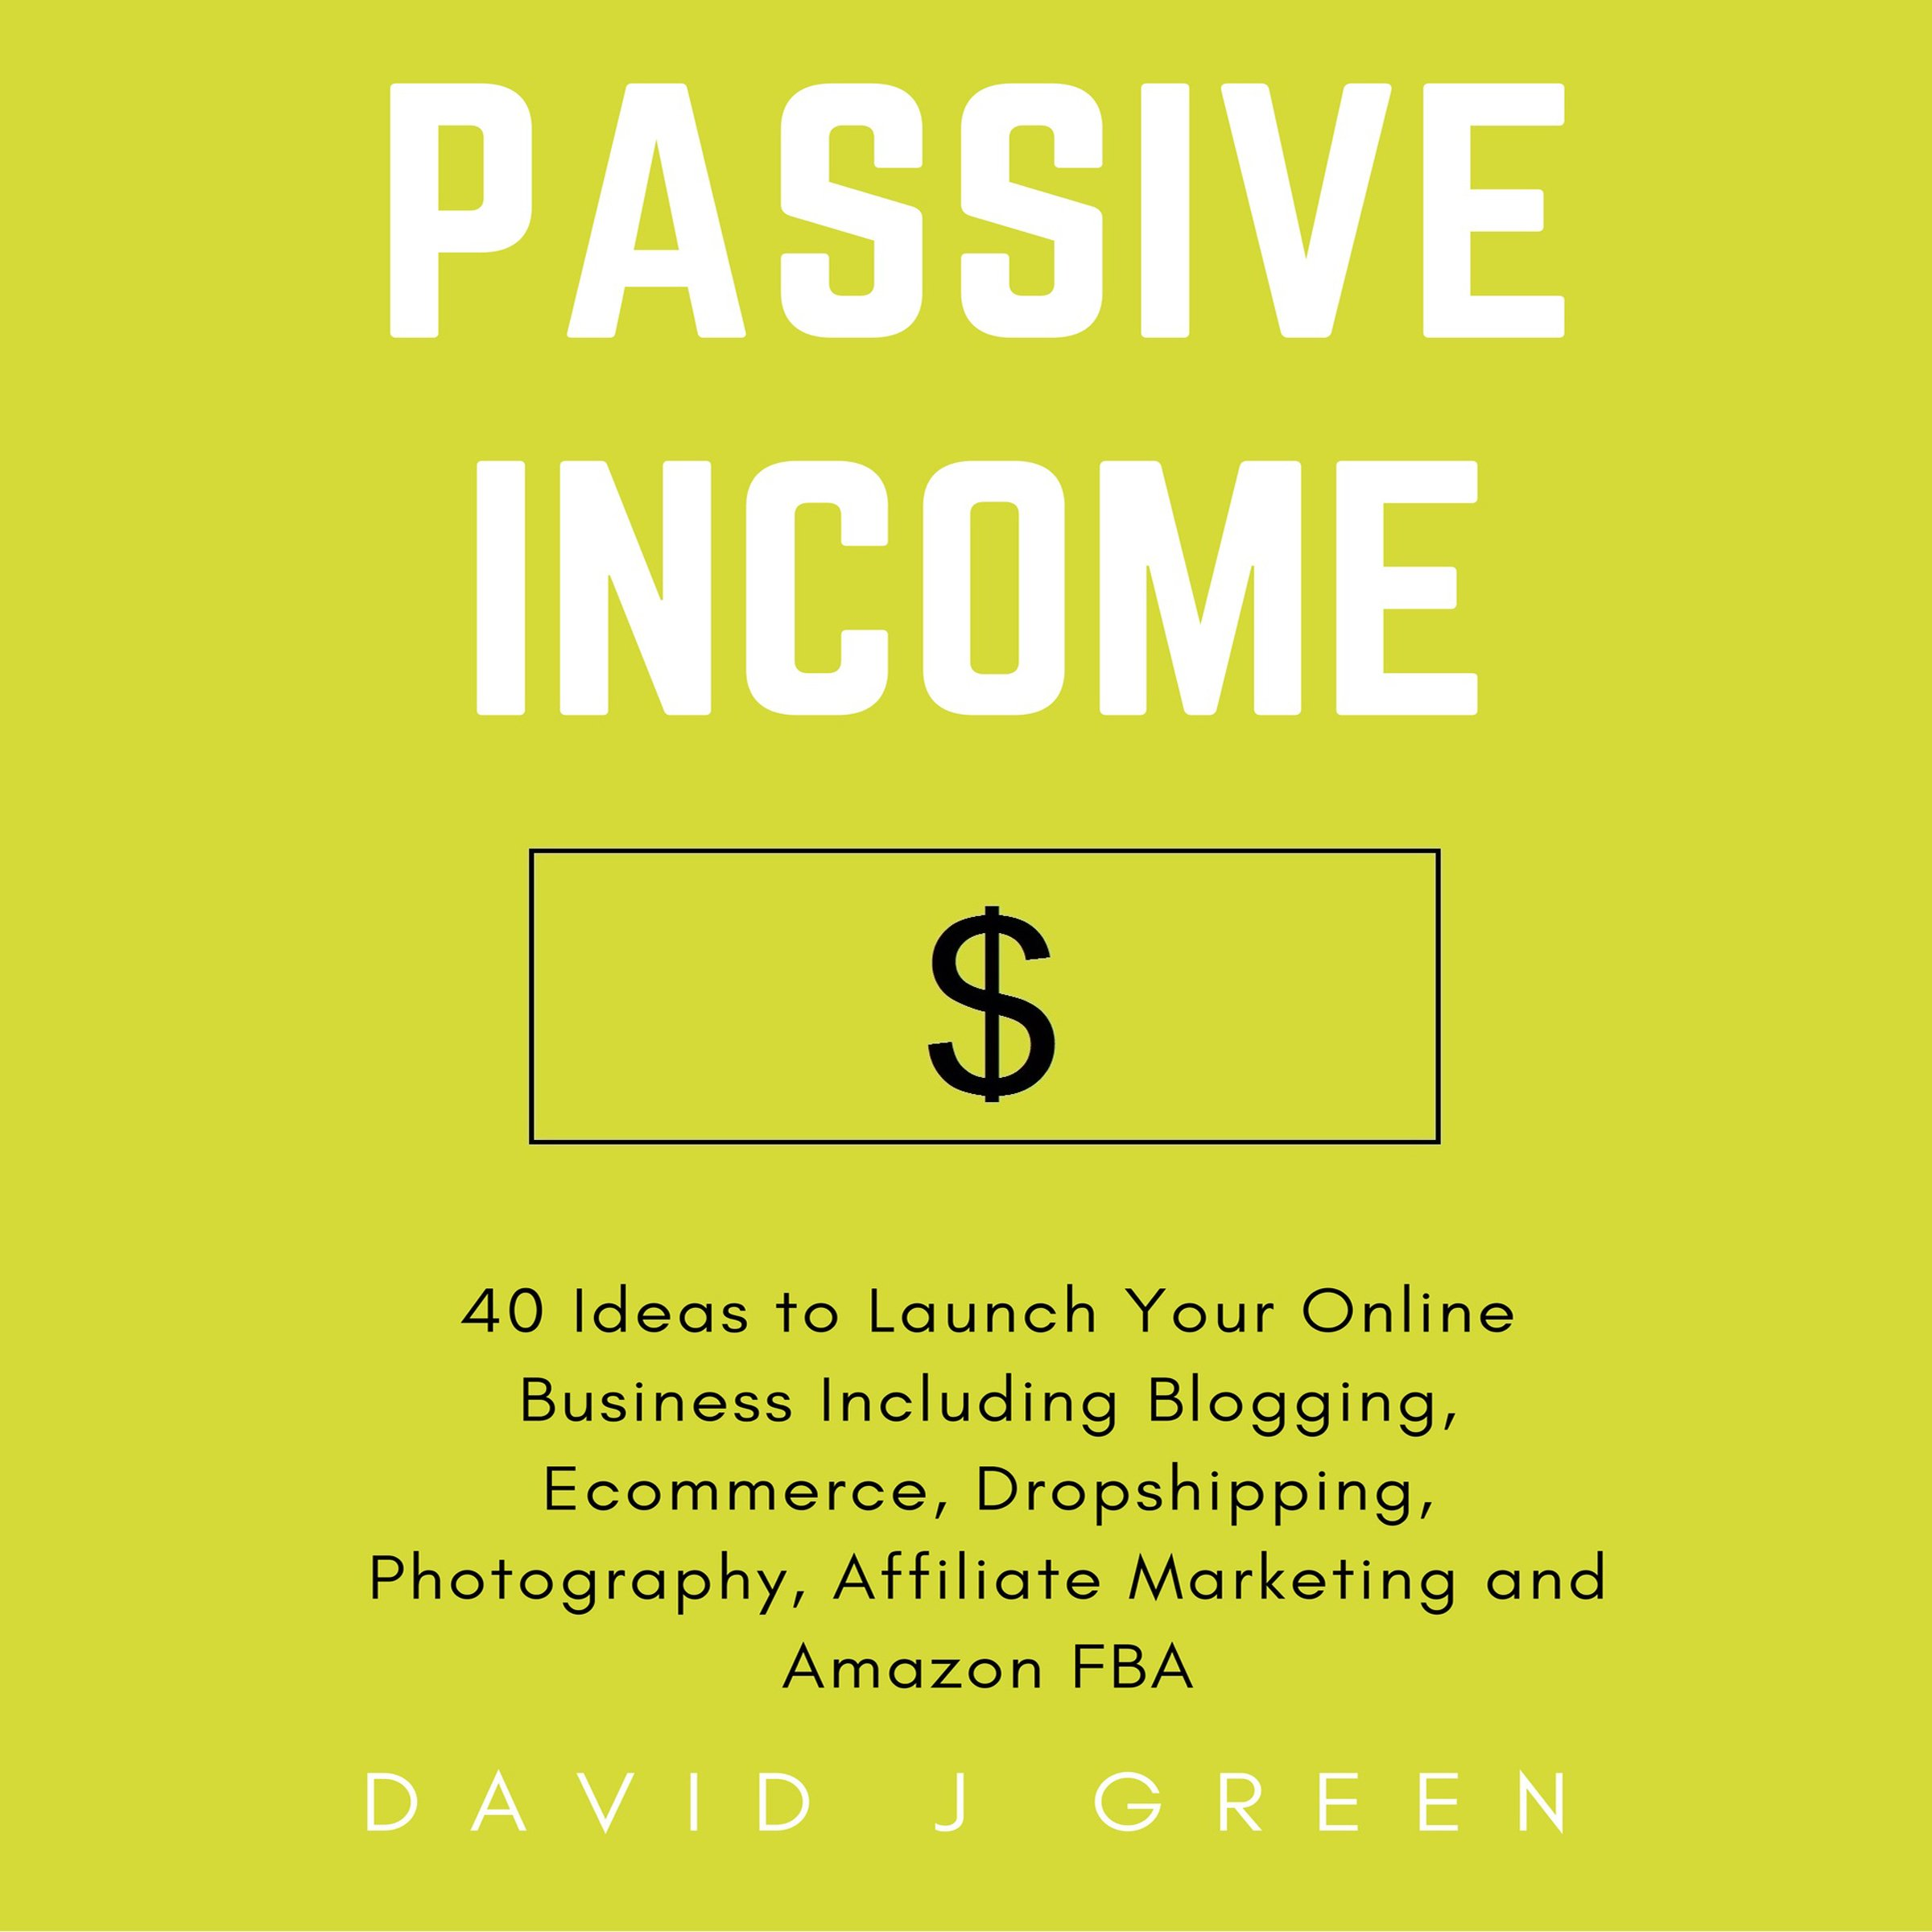 Passive Income  40 Ideas To Launch Your Online Business Including Blogging Ecommerce Dropshipping Photography Affiliate Marketing And Amazon FBA